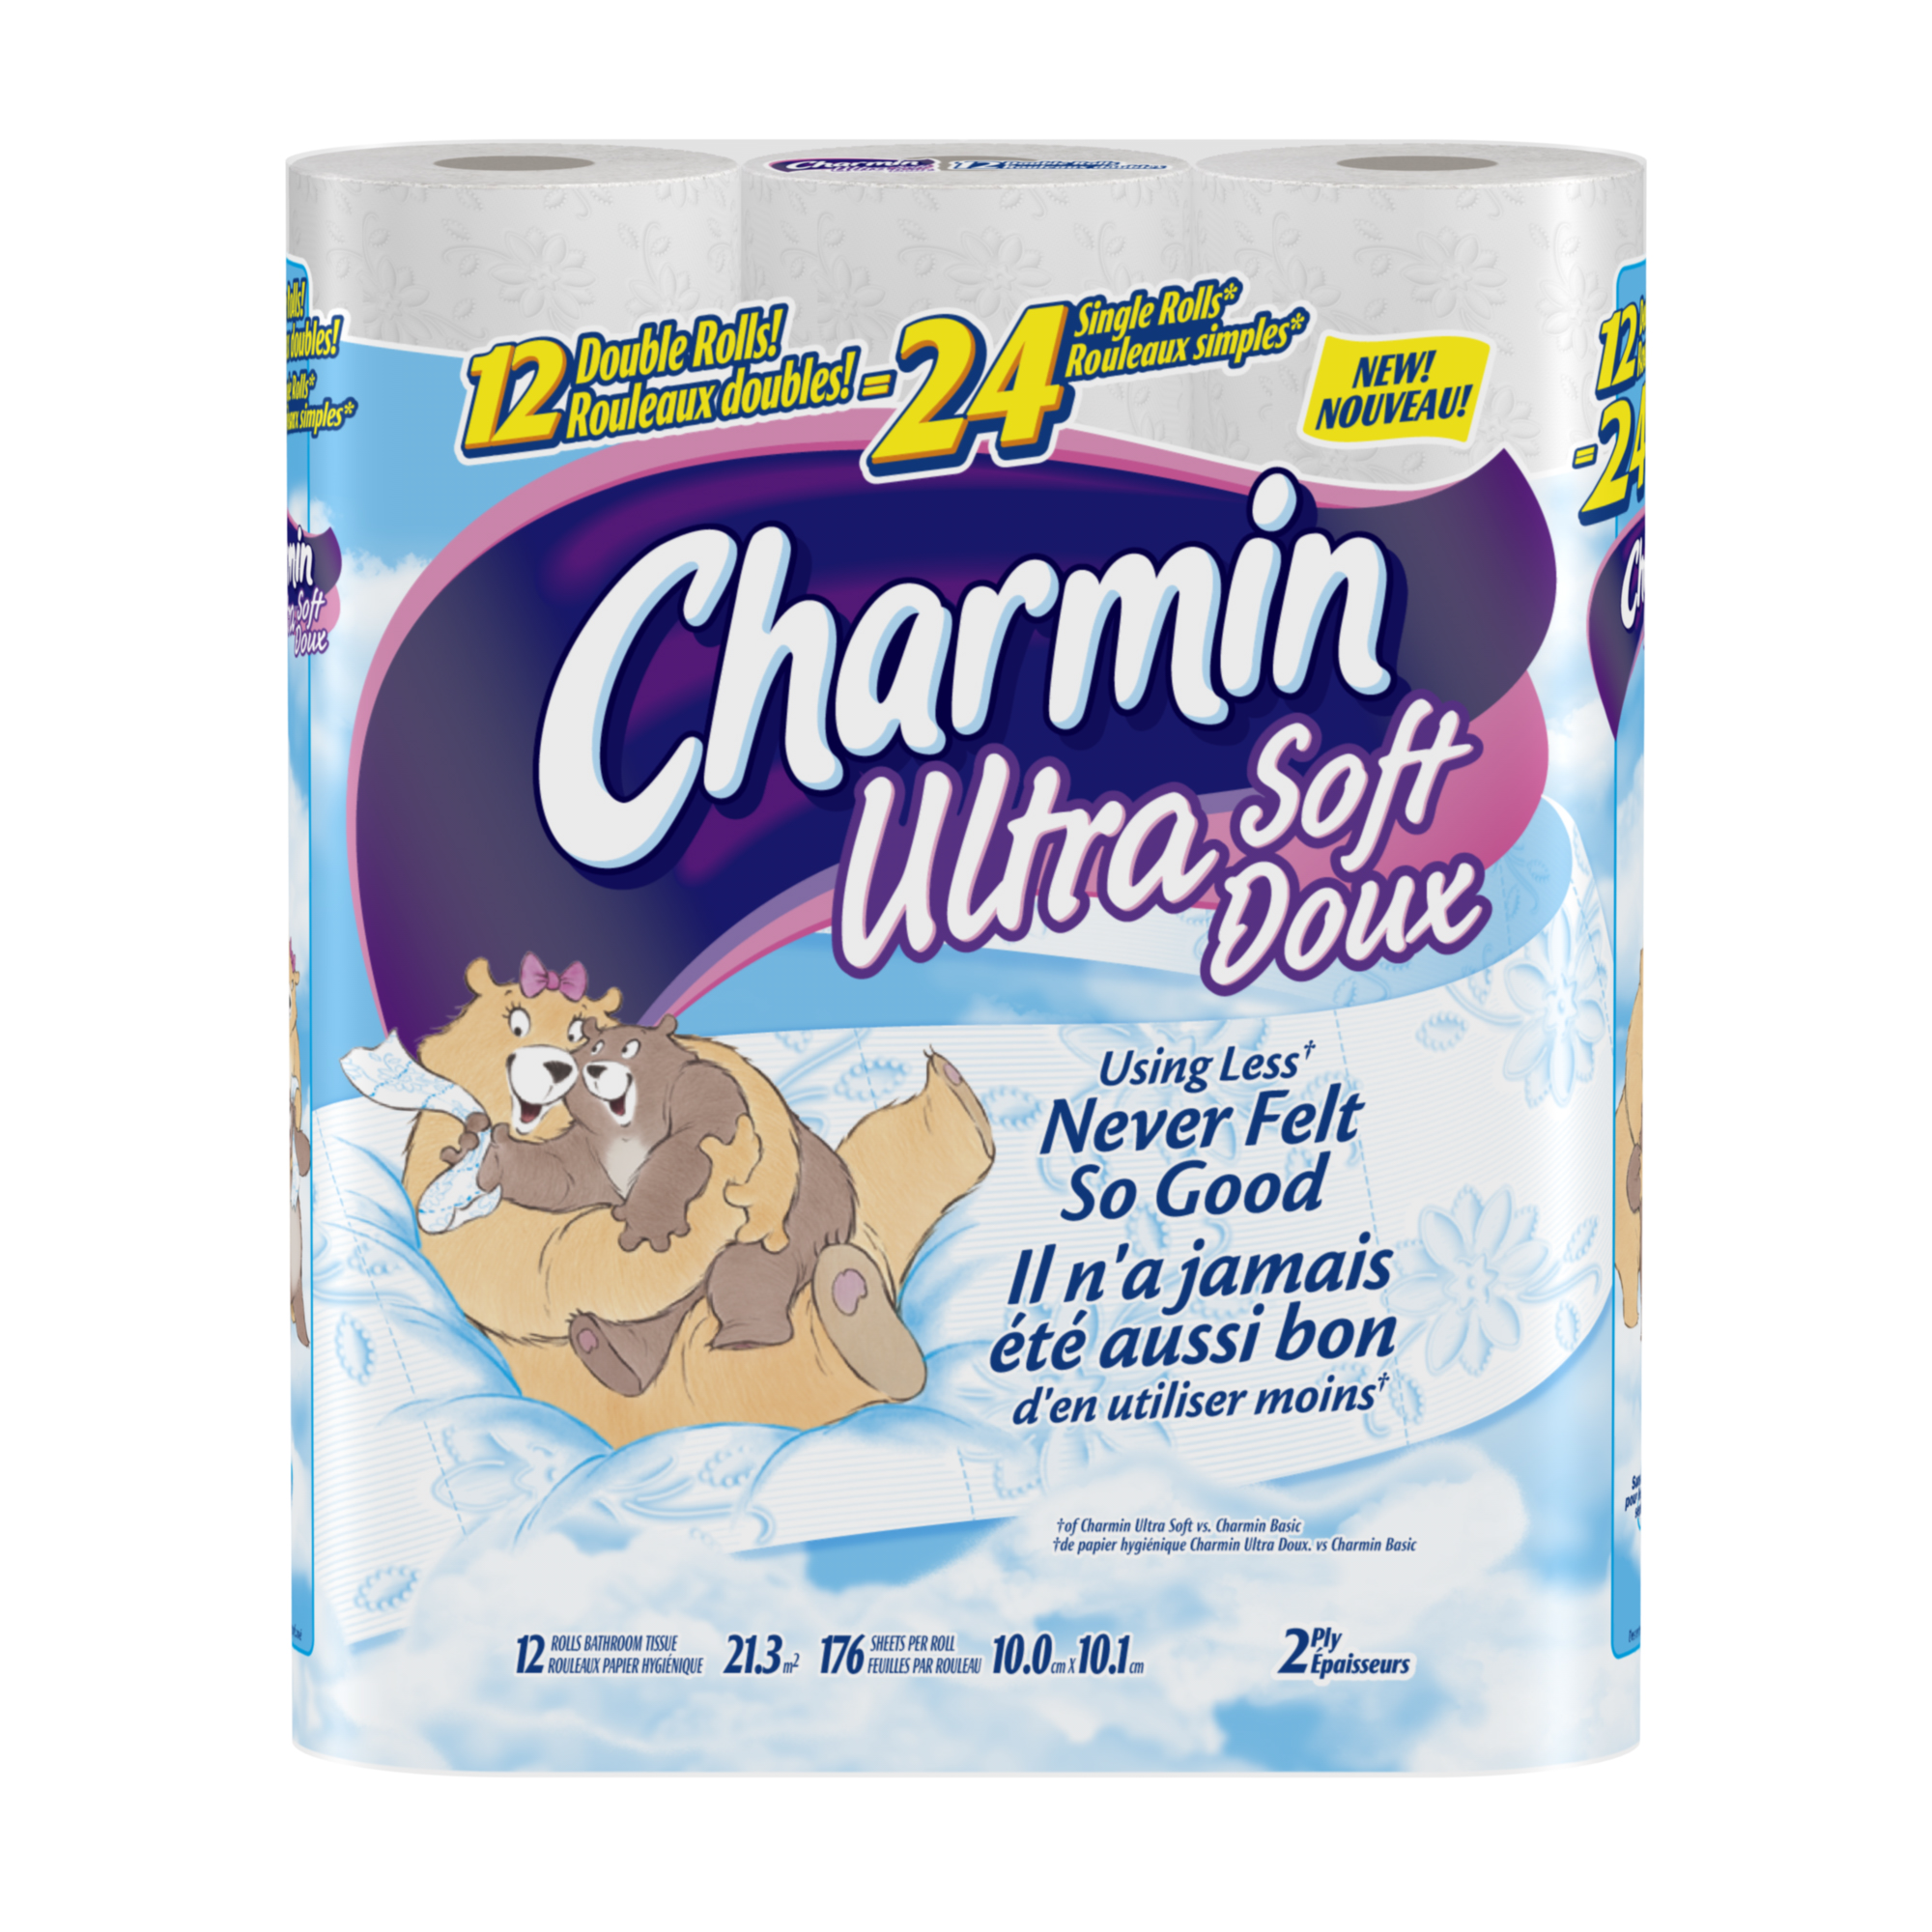 Charmin Ultra Soft Review